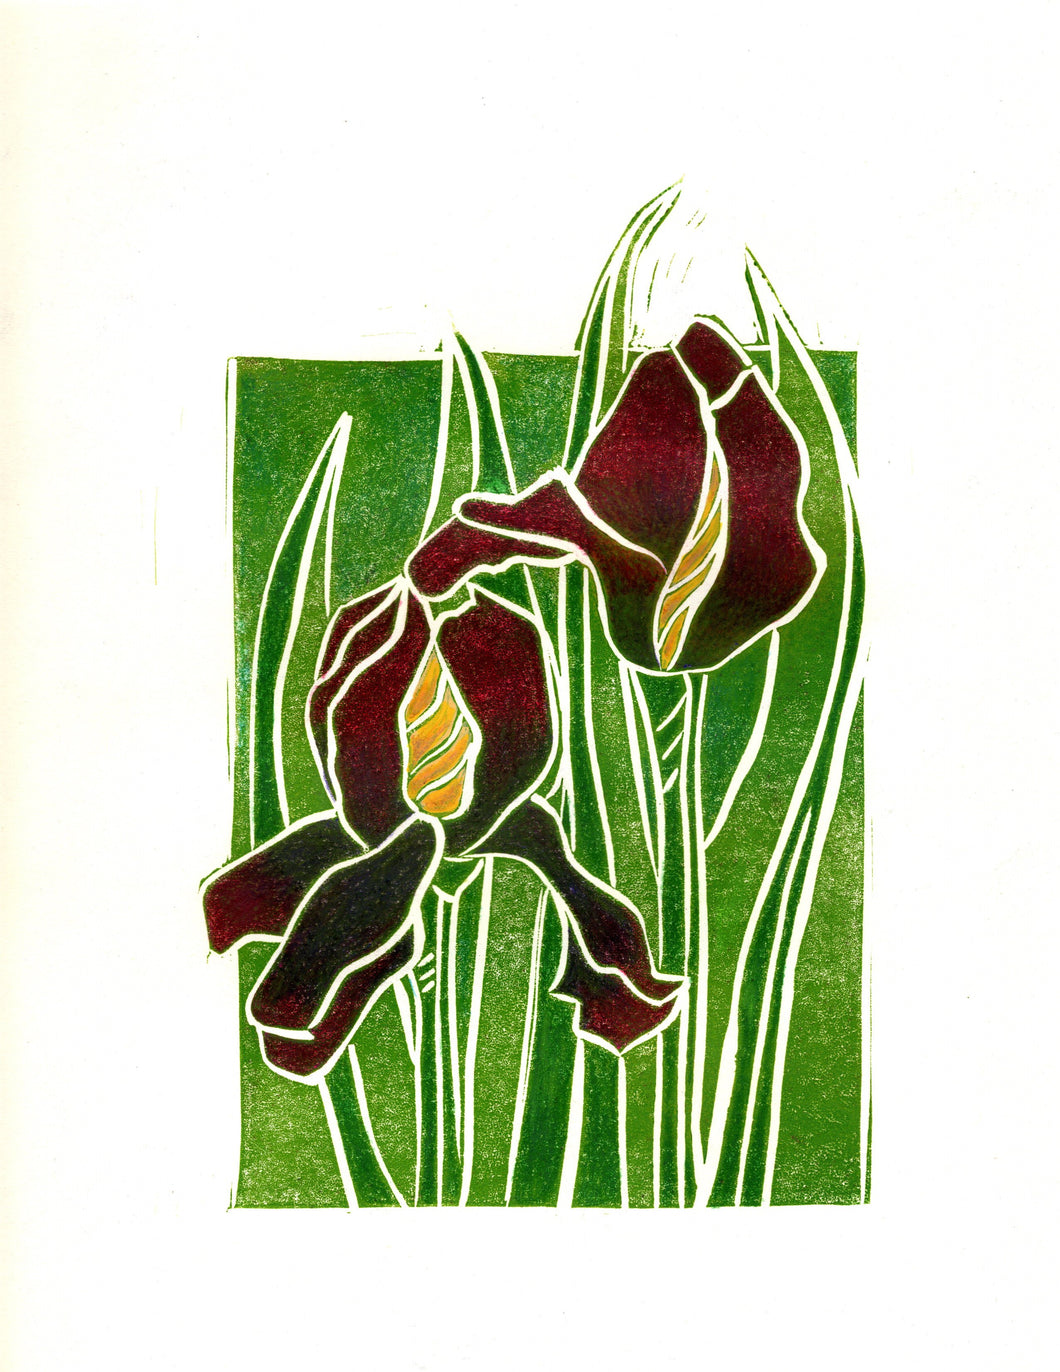 Hand-Colored Iris Linocut Limited Edition Print by Artist RH Zondag